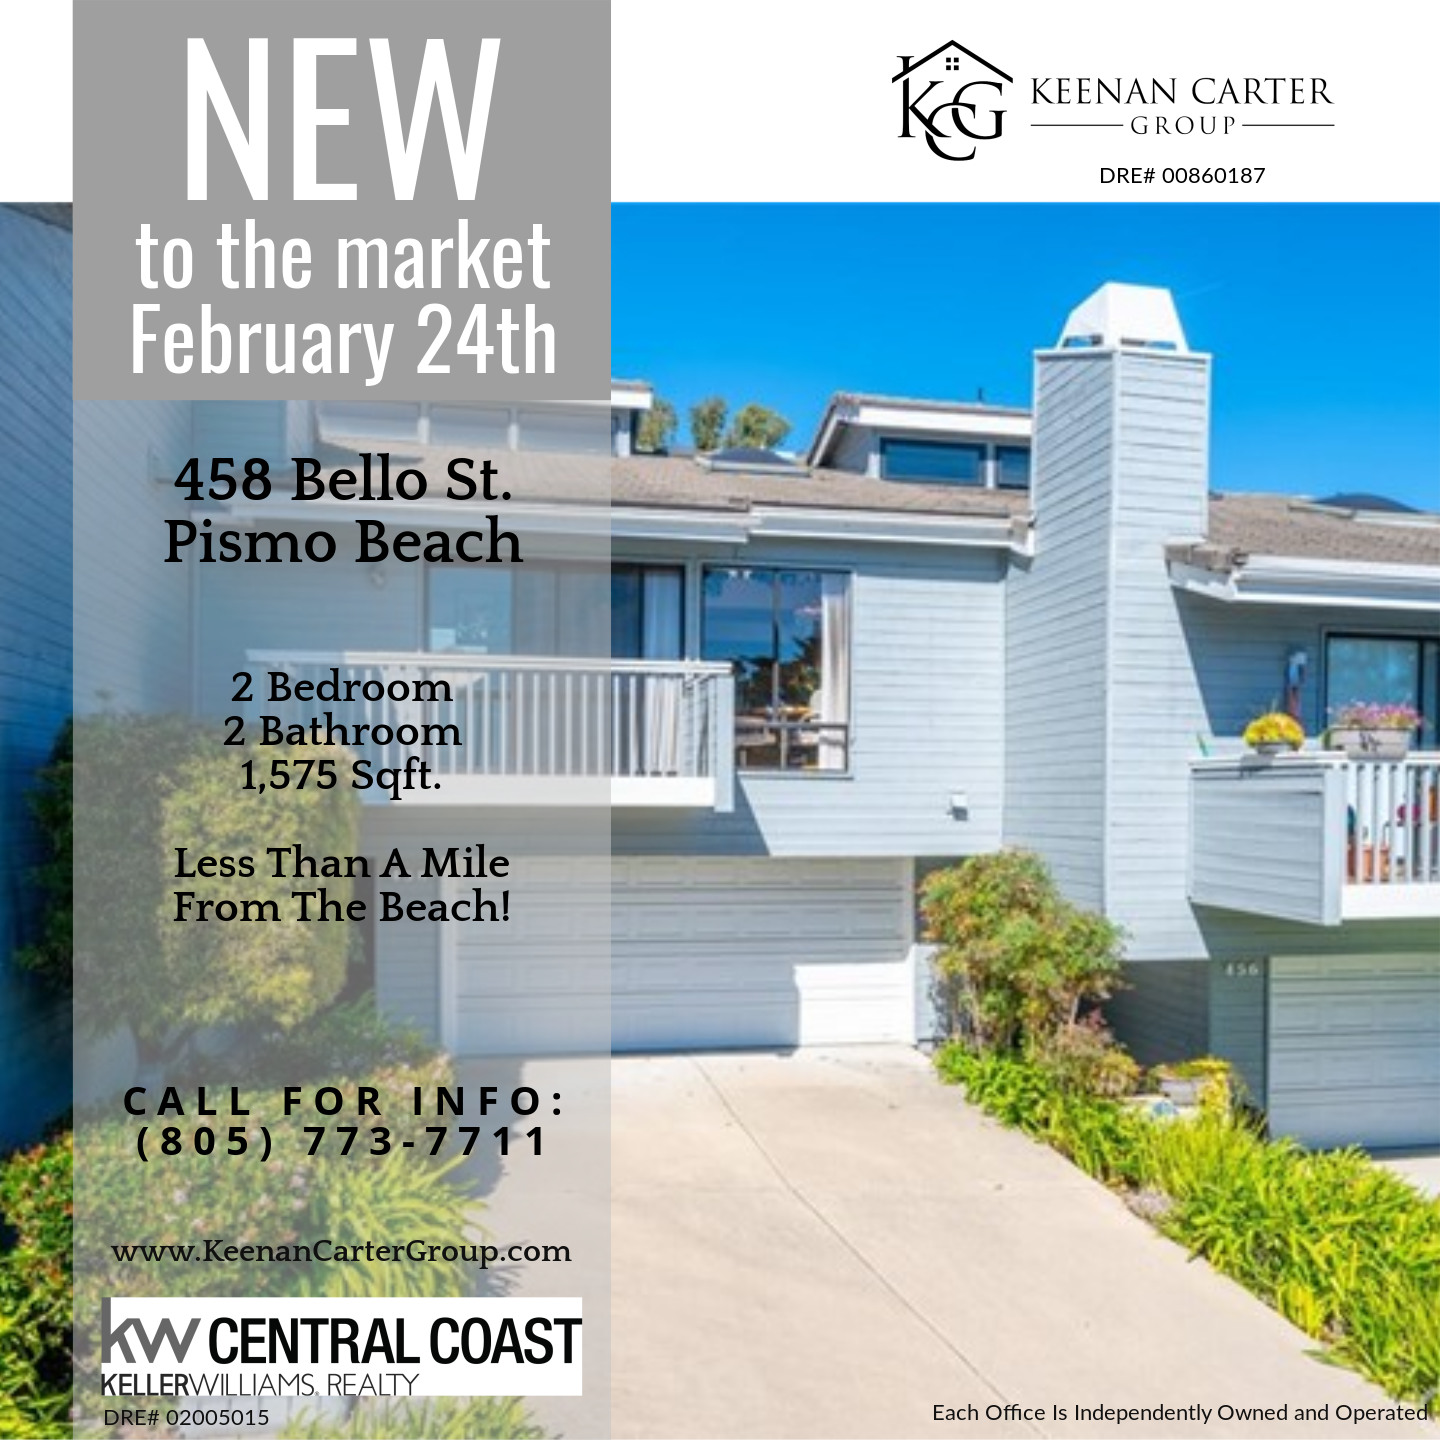 Pismo Beach Condo For Sale - 2 Bedroom 2 Bathroom With Ocean Views